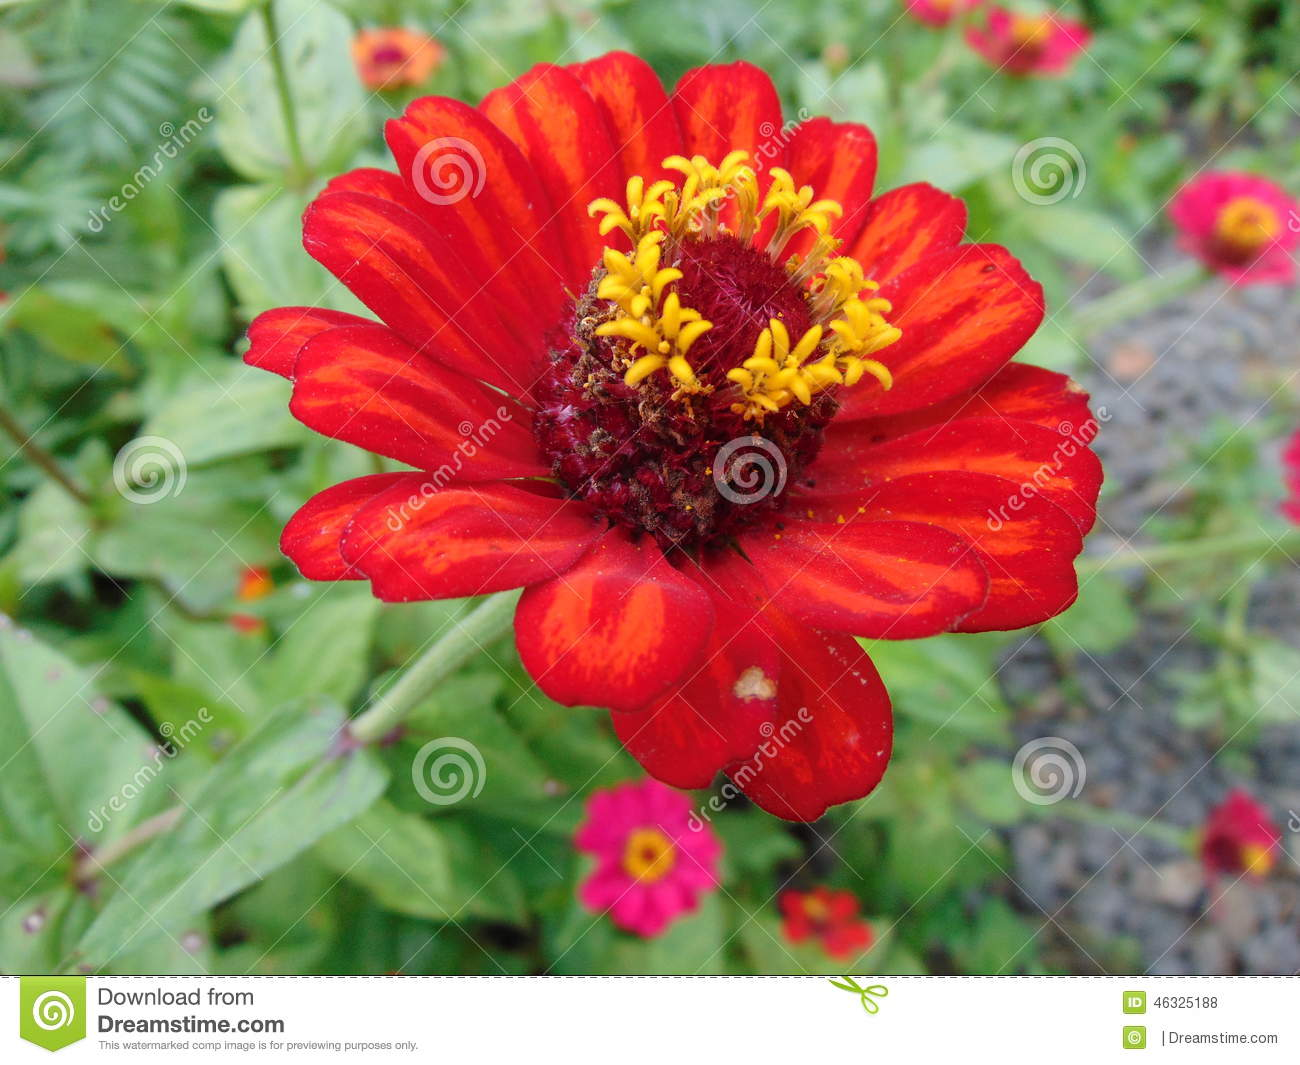 red flower exotic stock photo  image, Natural flower